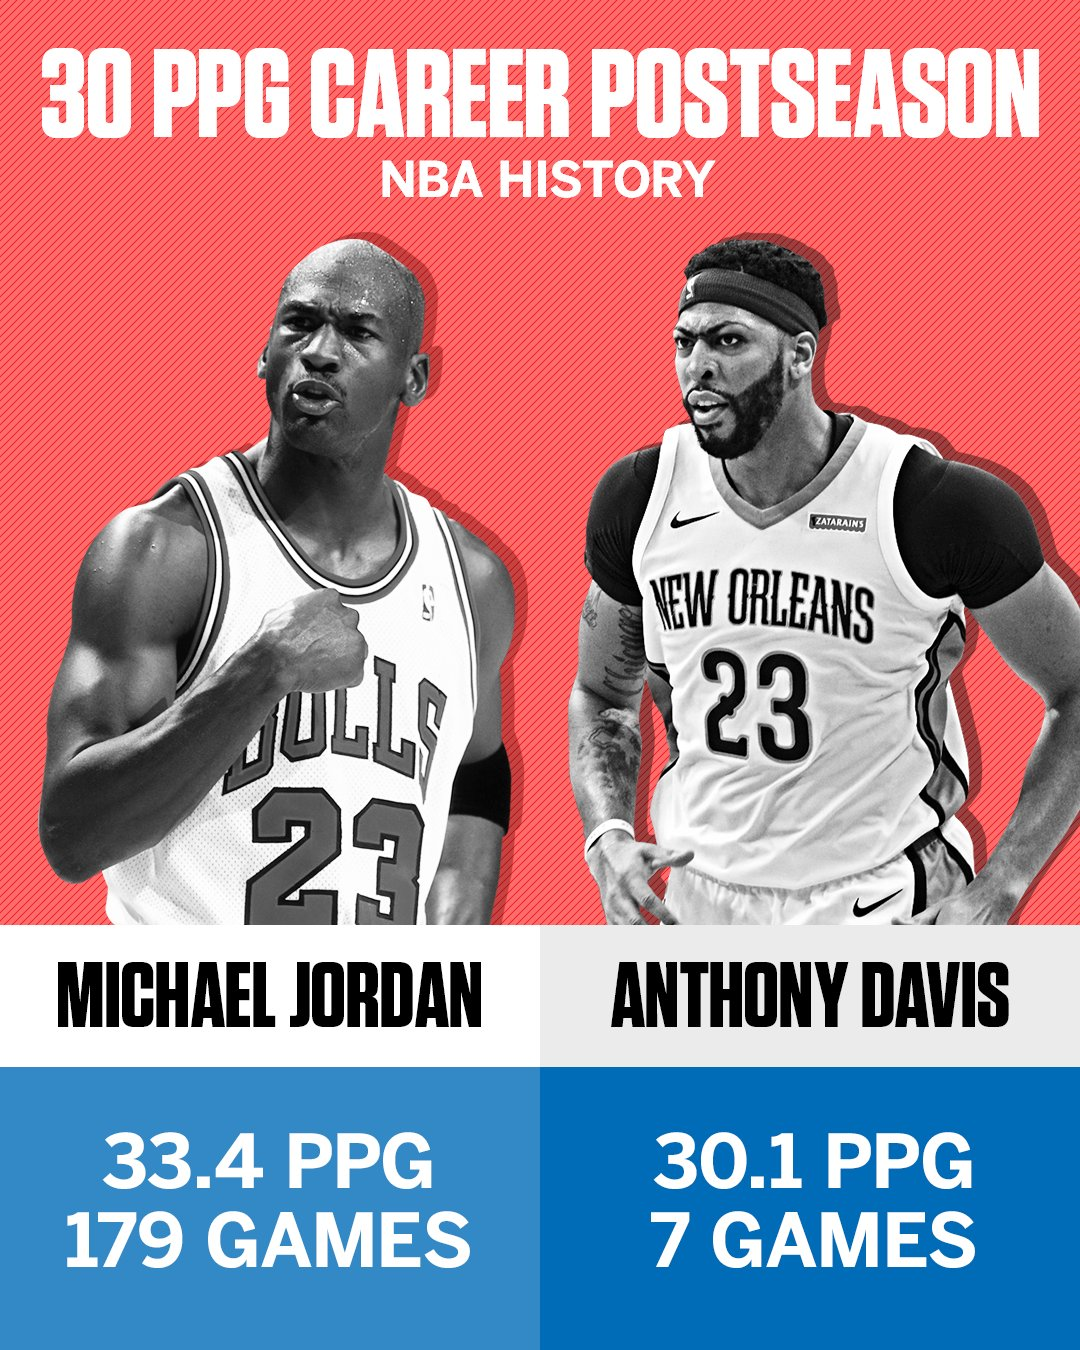 Anthony Davis and Michael Jordan.  That's the complete list. https://t.co/IAKaZX8s6X